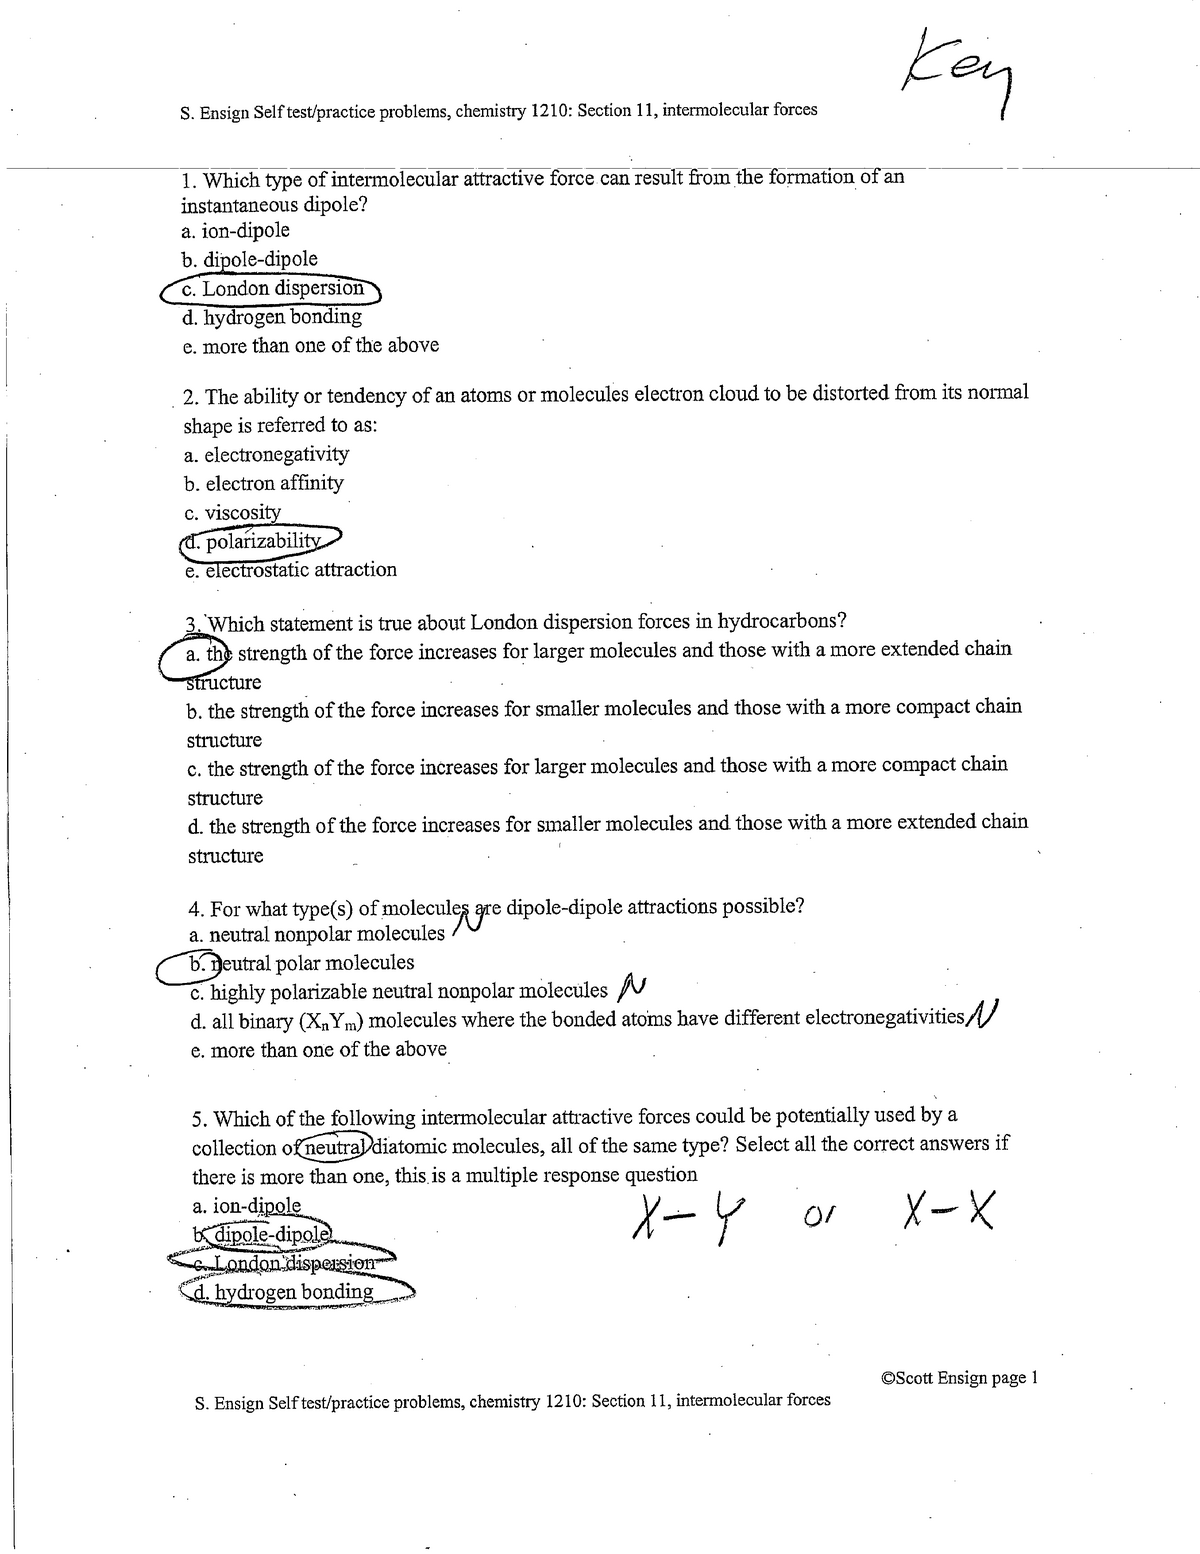 Intermolecular Forces Worksheet Answers - Answers / What